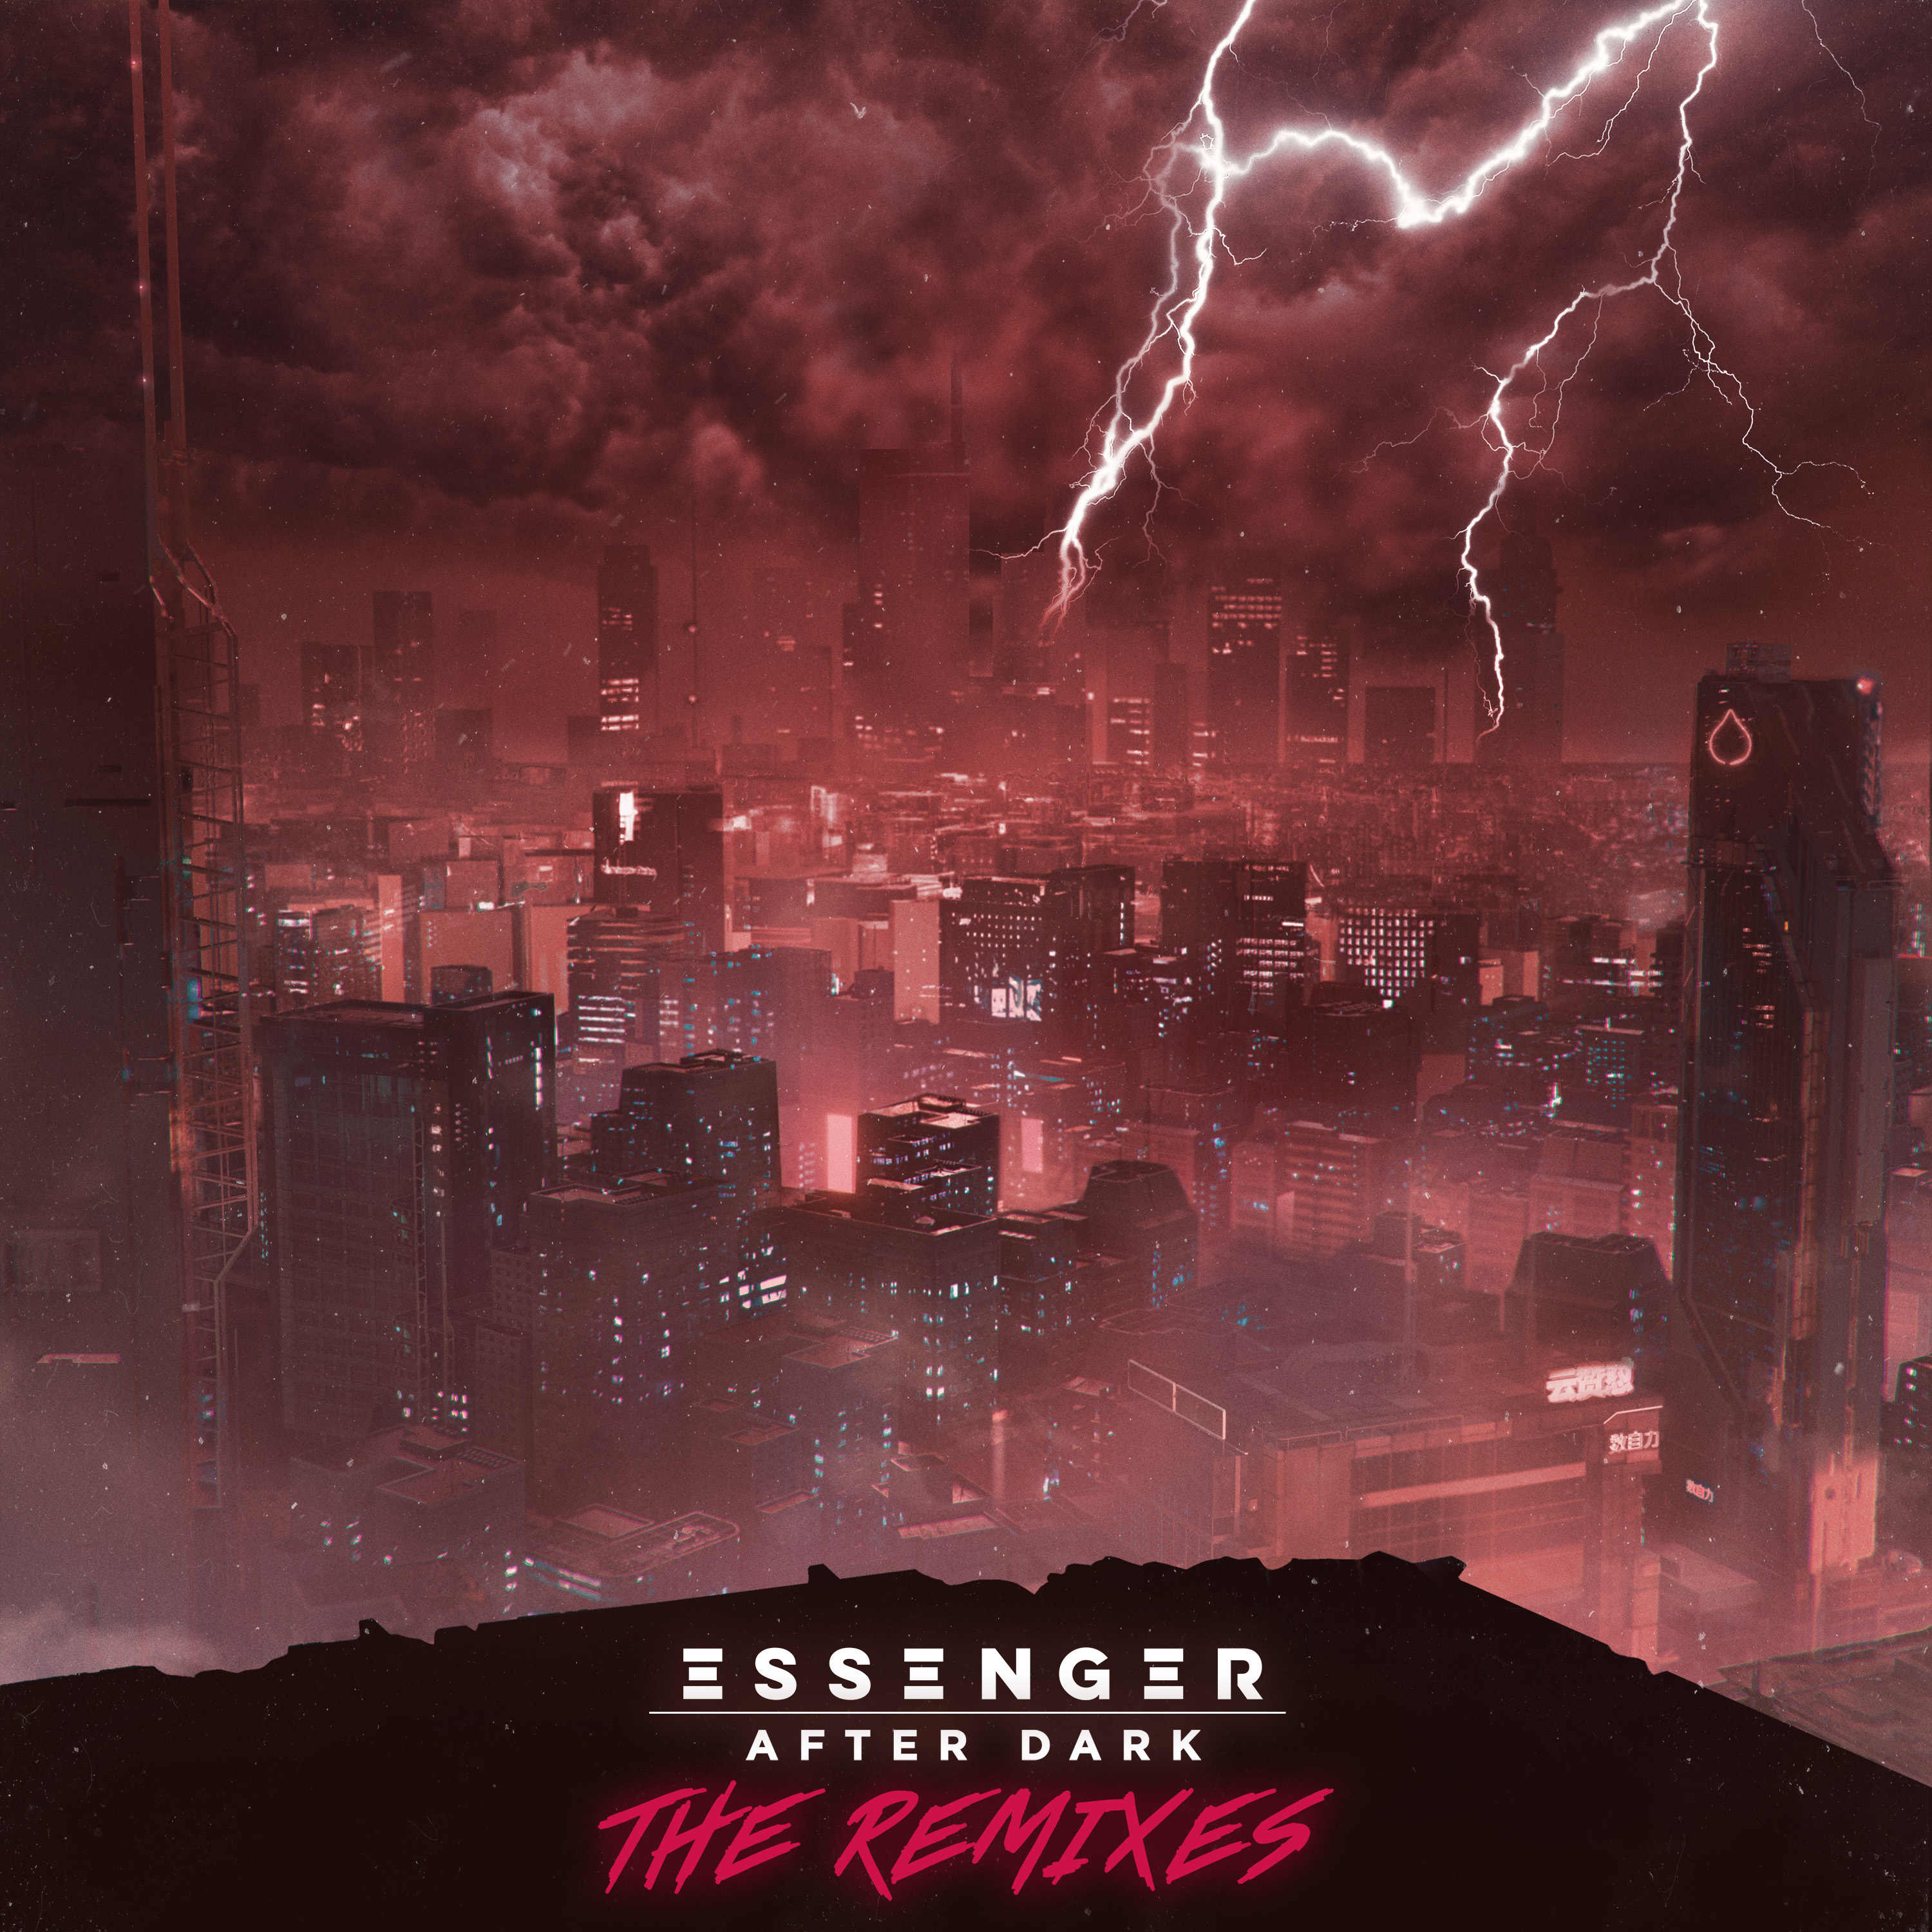 Essenger - After Dark (The Remixes) Image